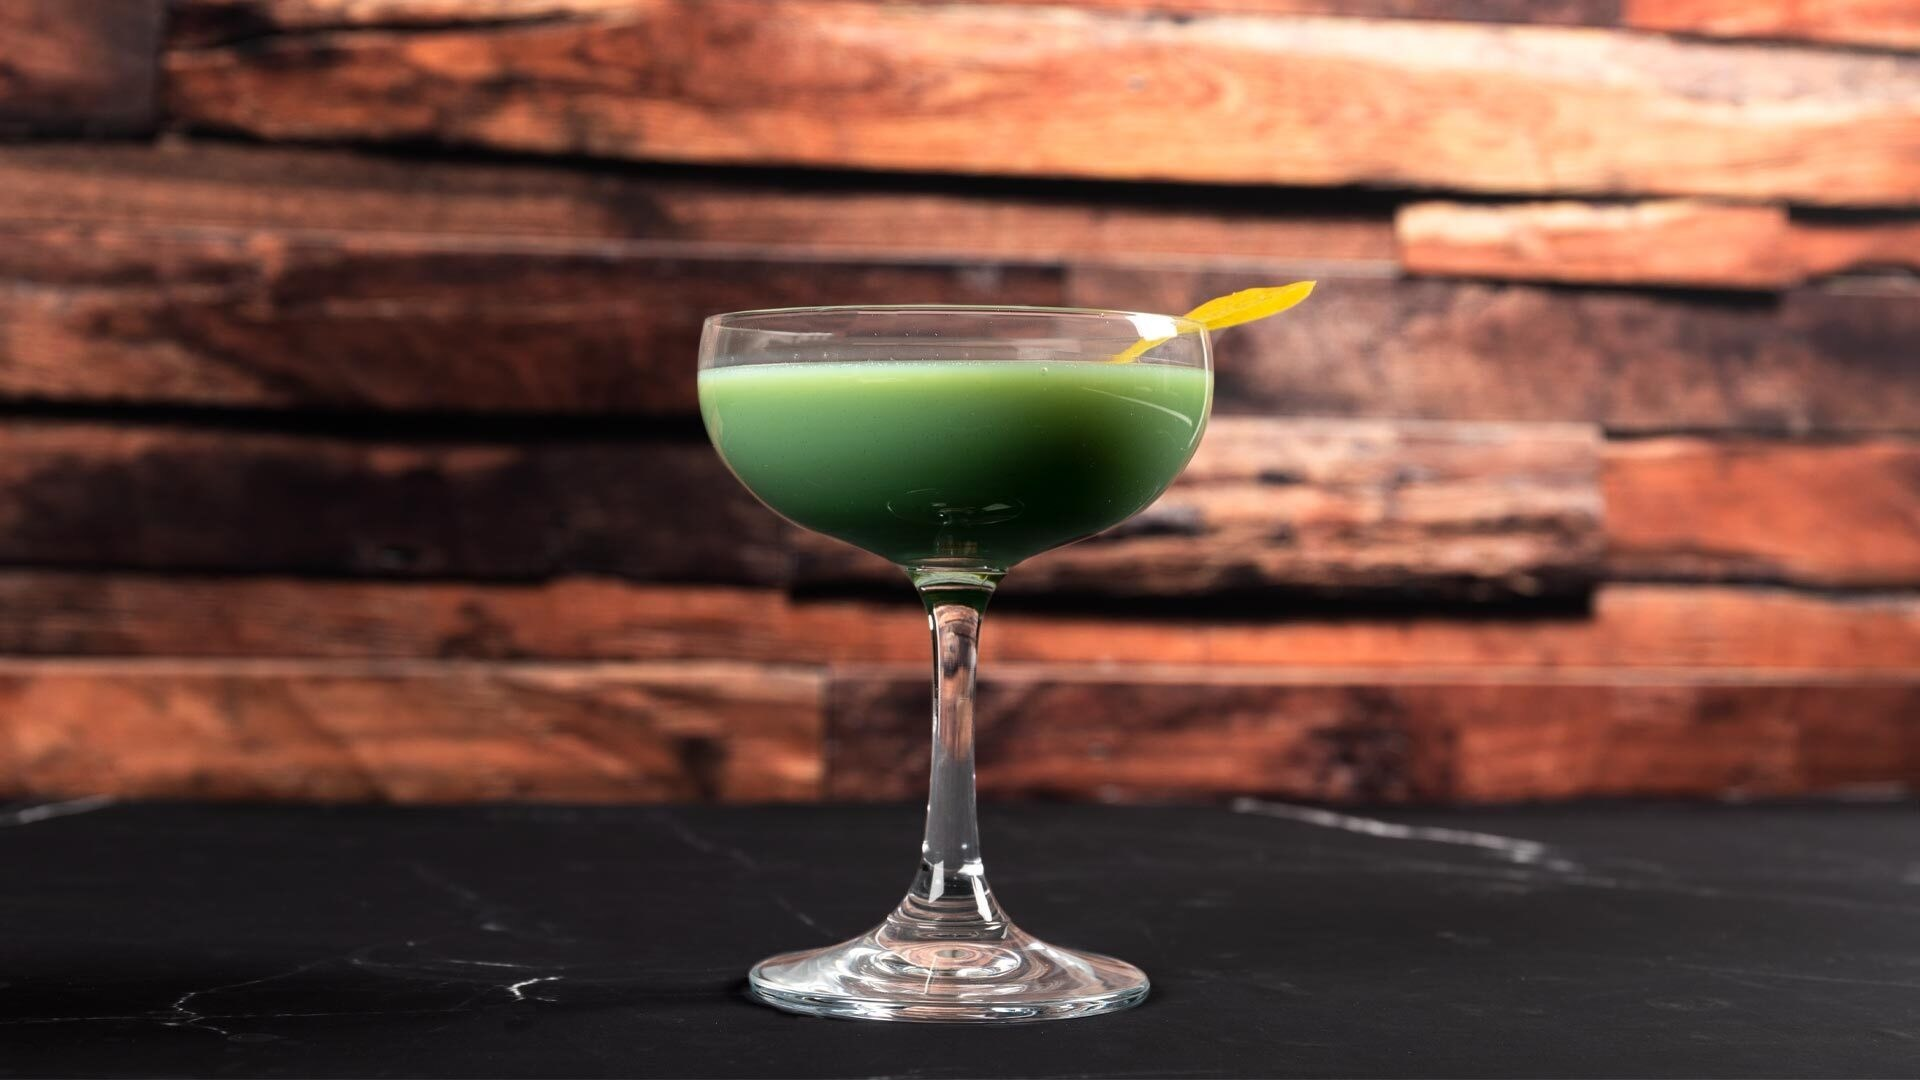 emerald isle, irish chocolate truffle martini, five farms irish cream liquer recipe